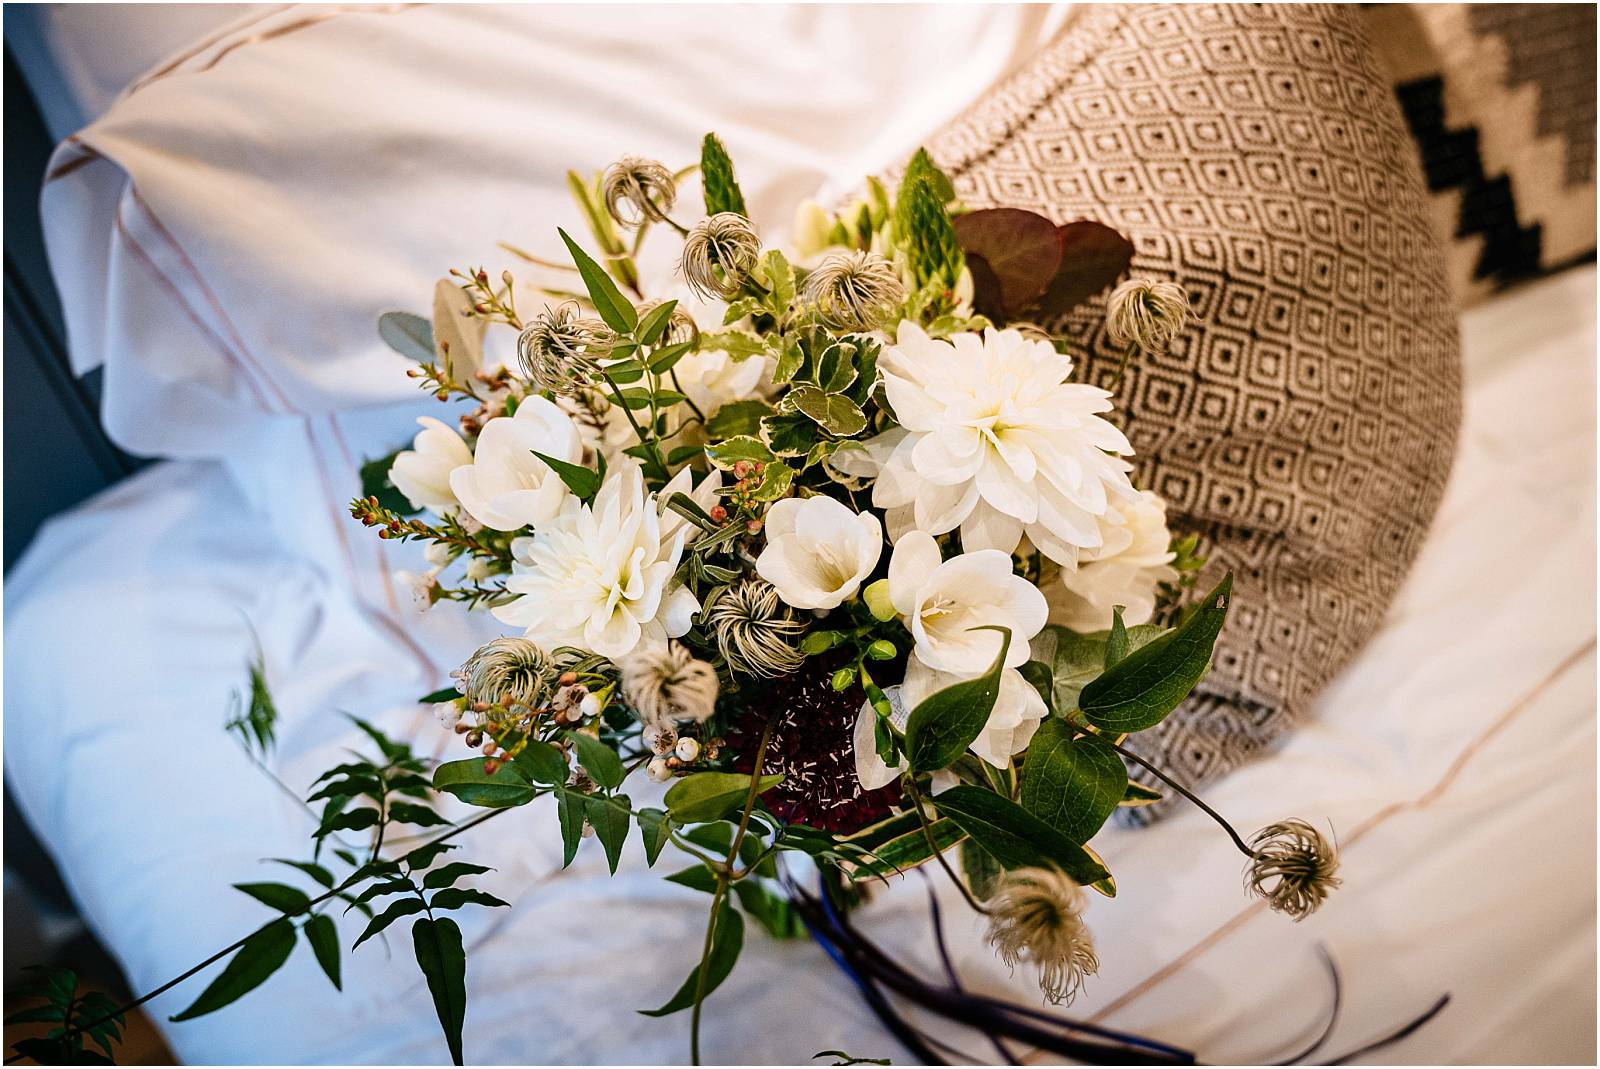 wedding bouquet by louise avery